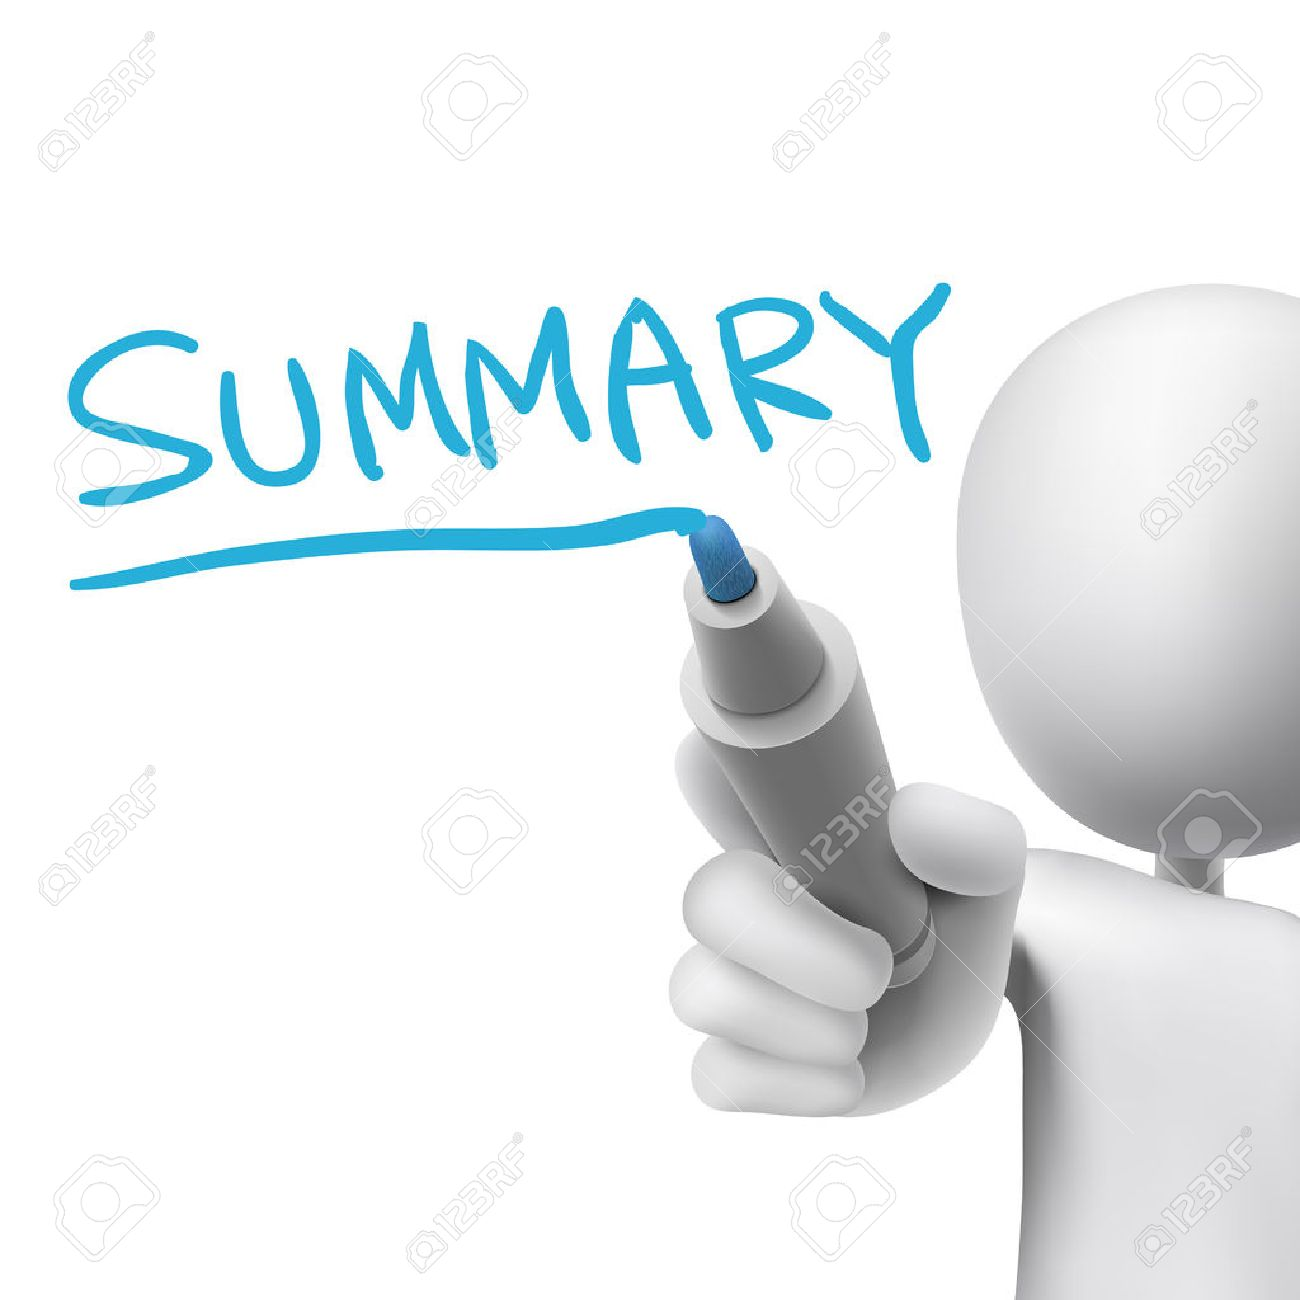 summary word written by 3d man over white - 31273724